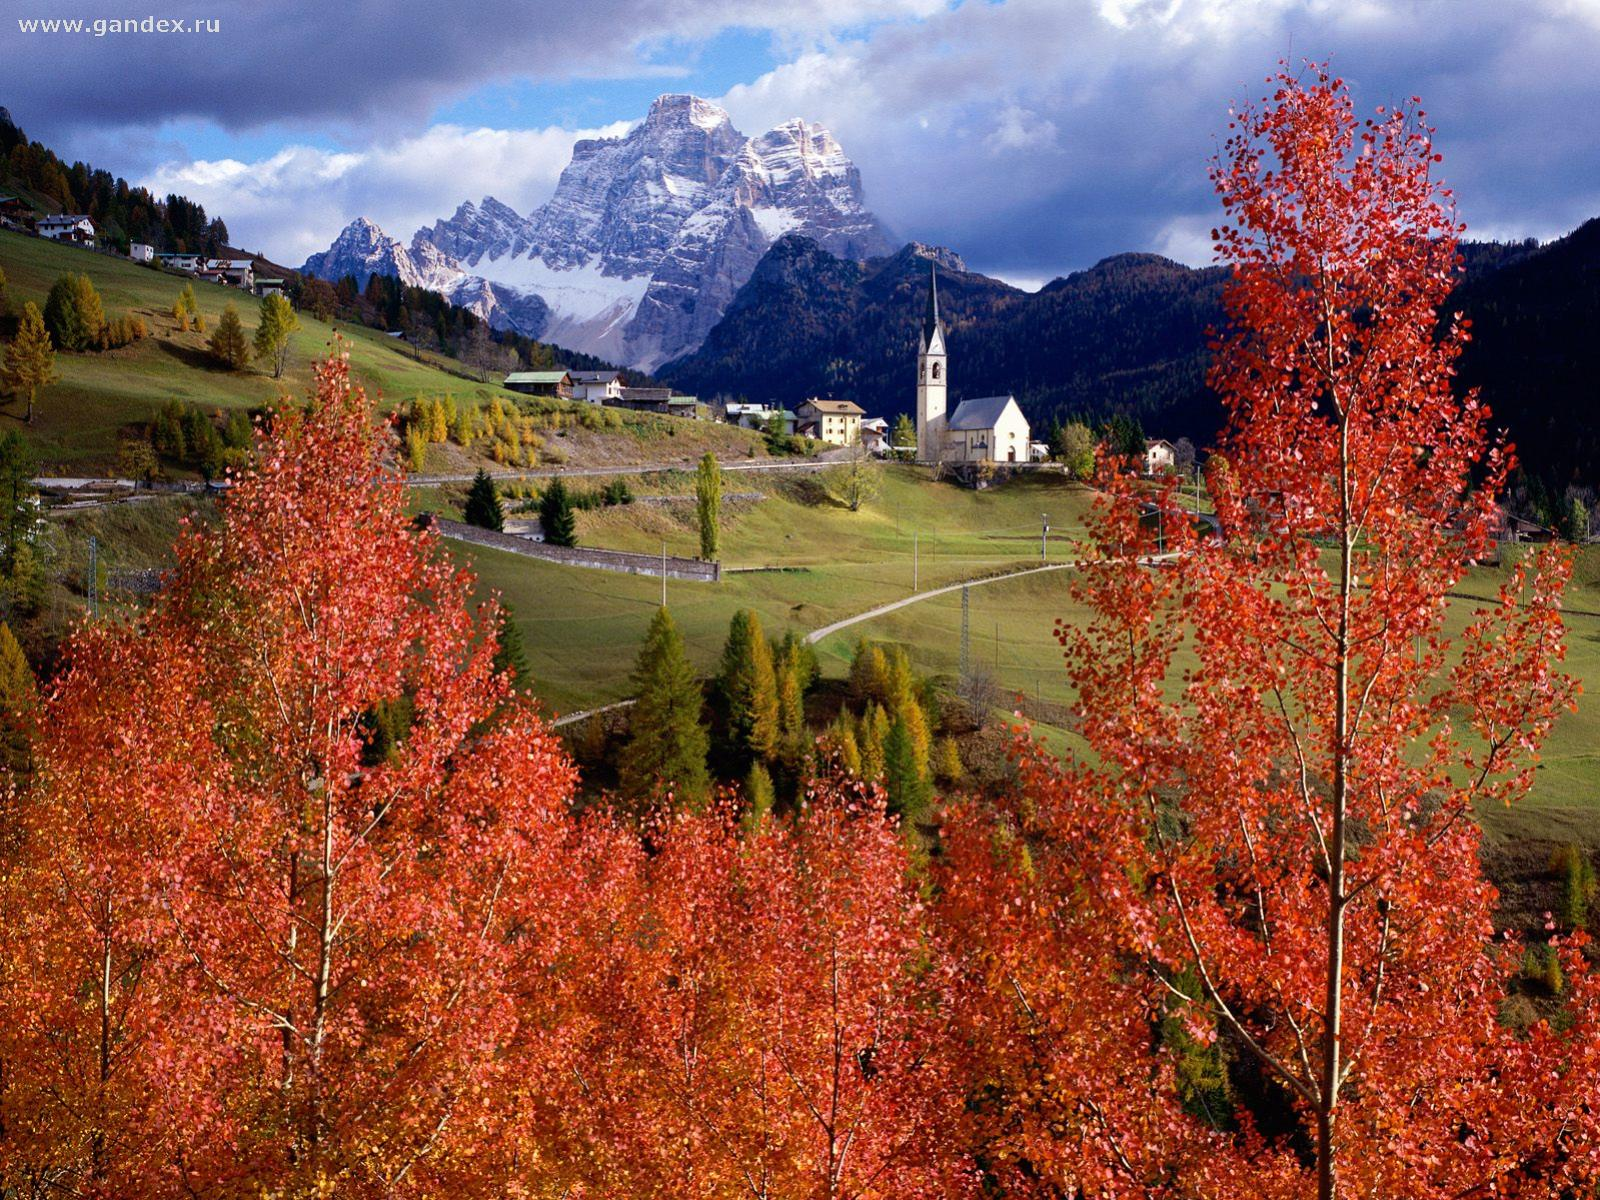 Beauty of Italy, including the nature, wallpapers on your desktop